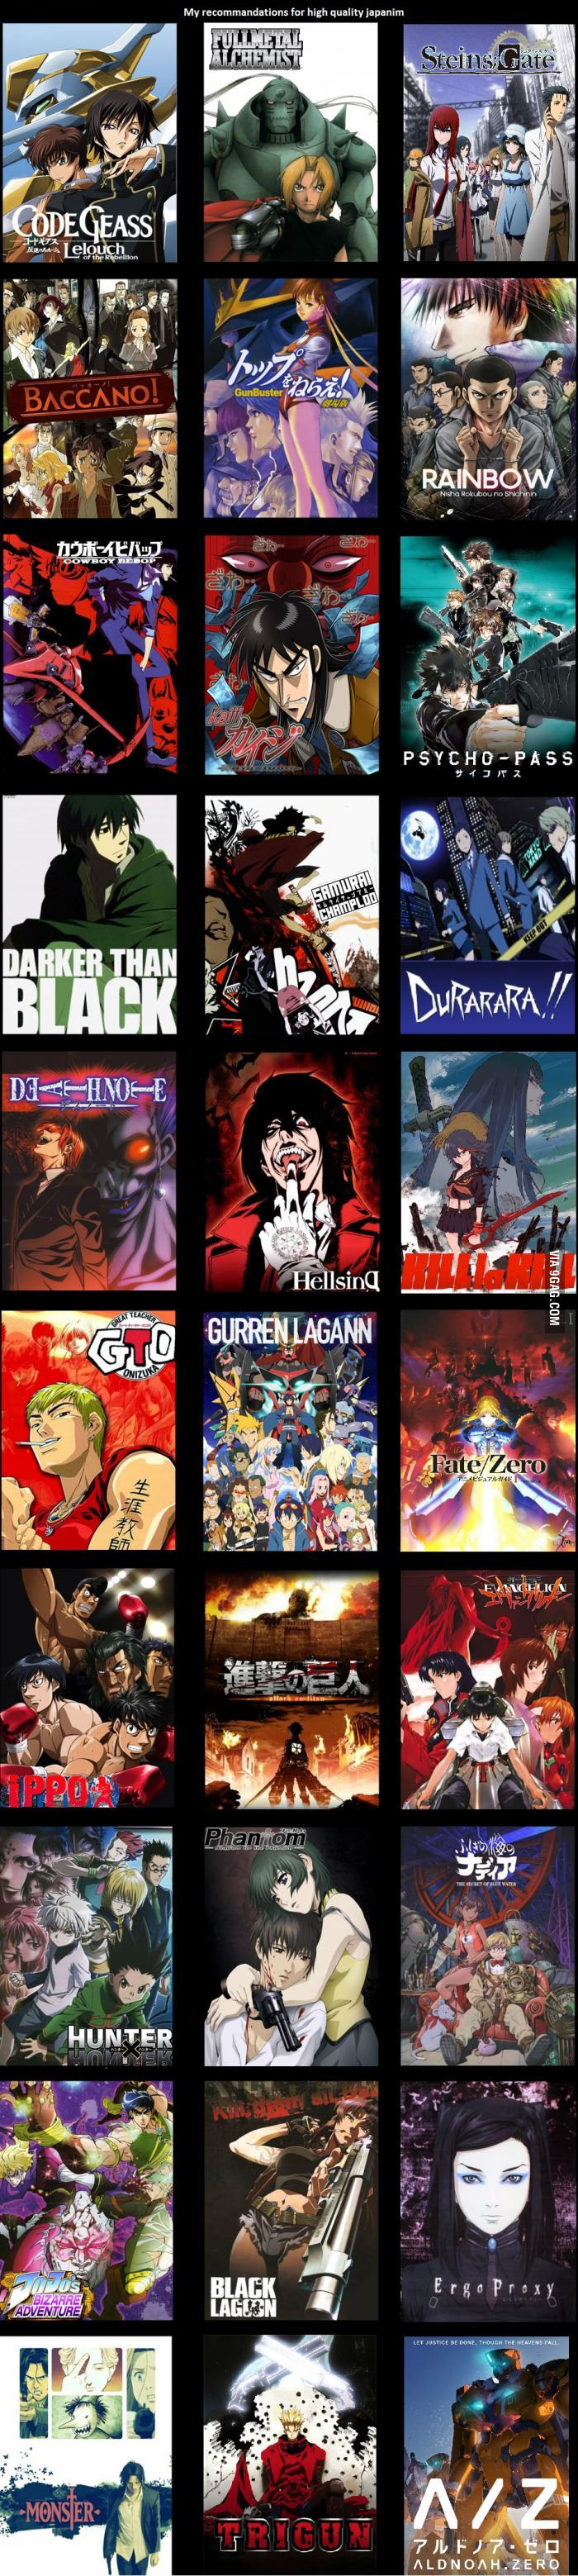 I heard 9gag wants more anime. Here is a subjective list of awsomeness